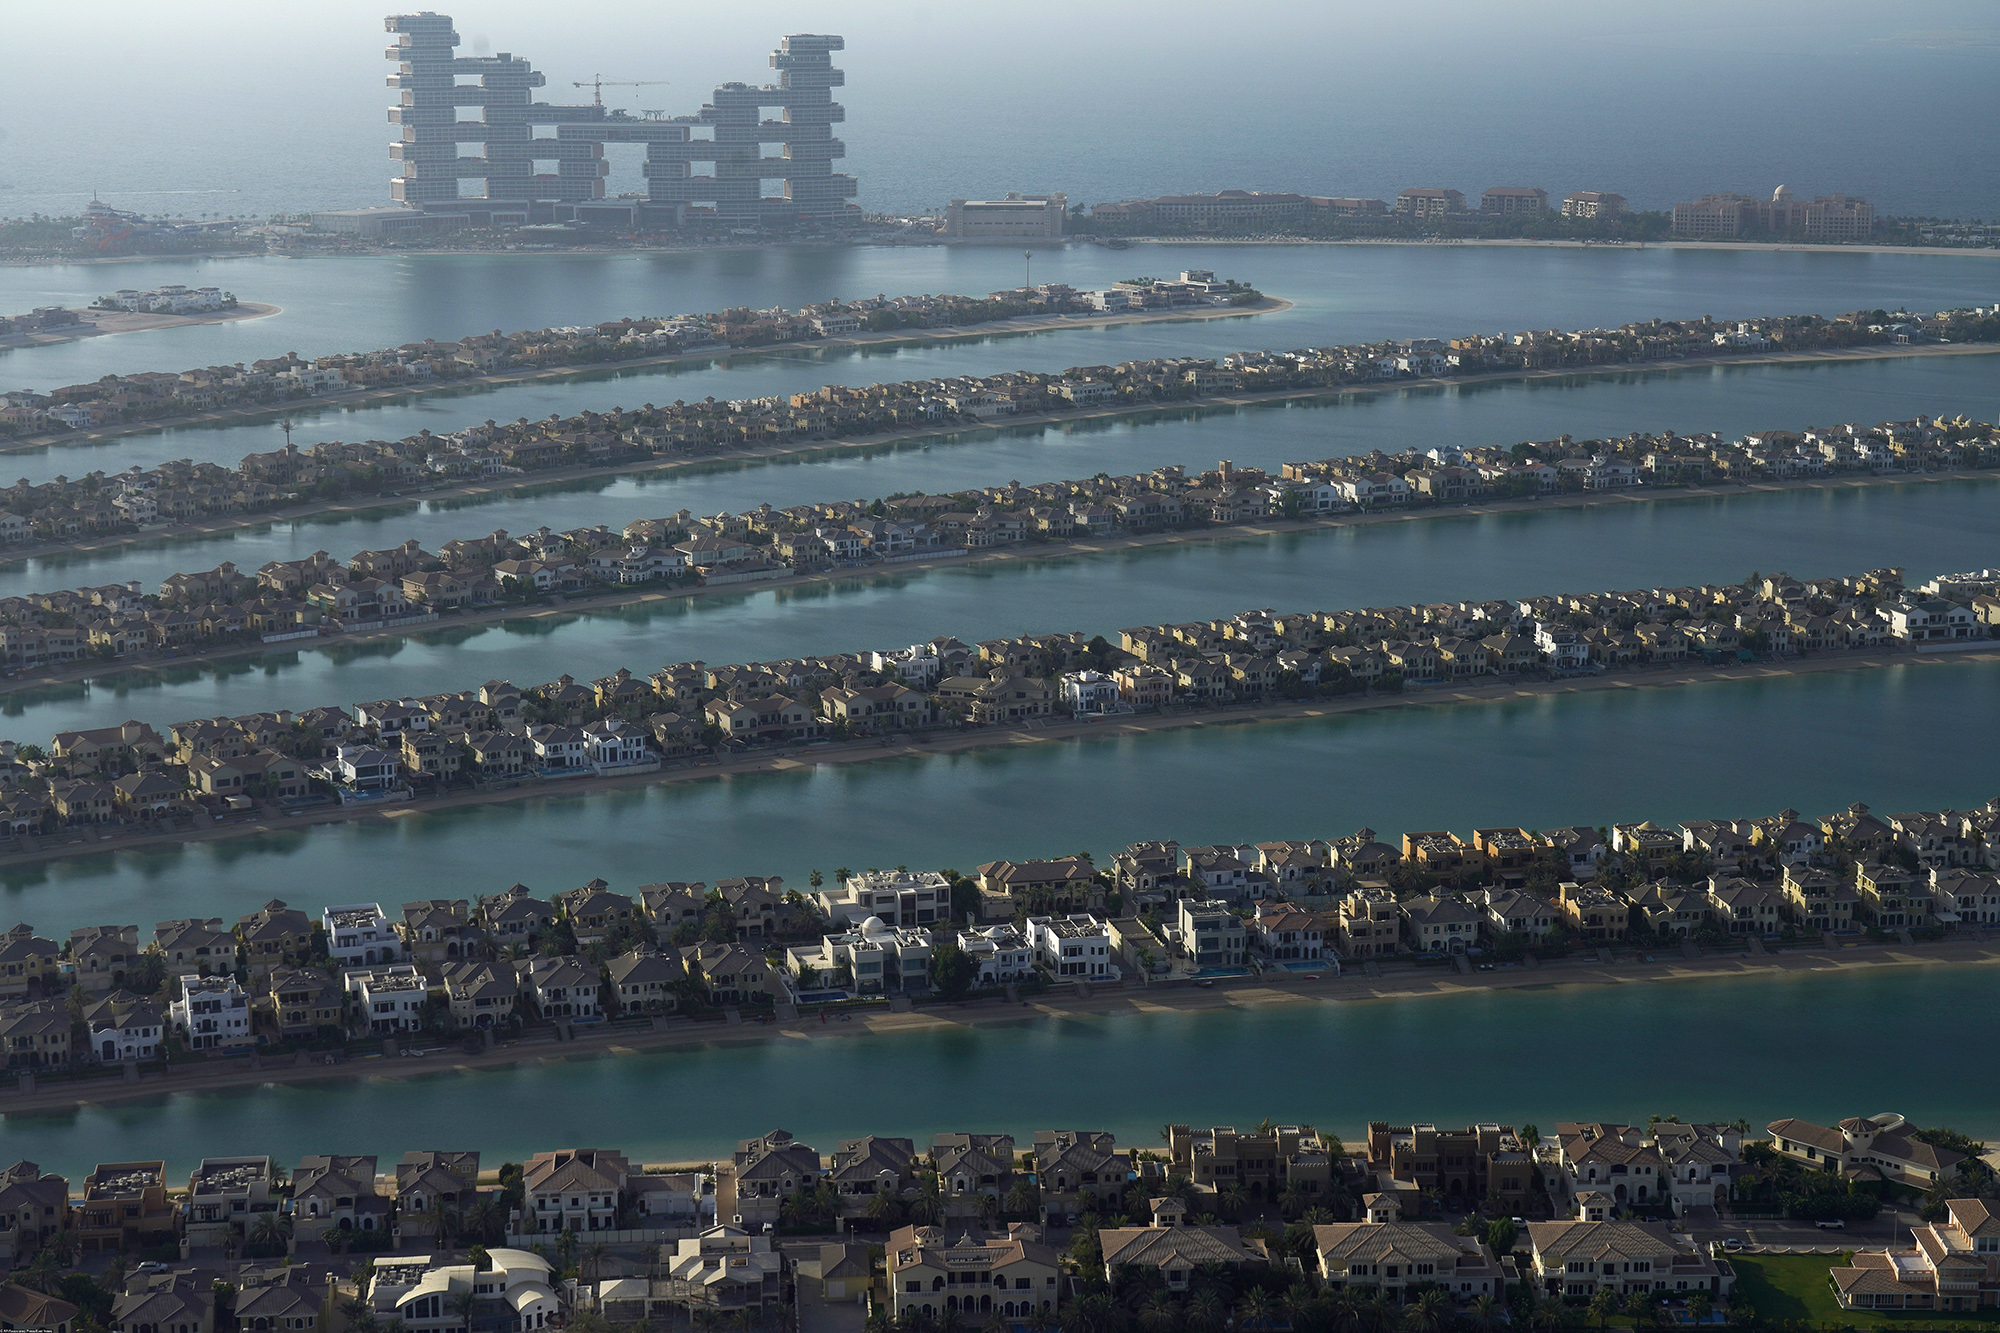 The fronds of the manmade Palm Jumeirah archipelago stretch out across the Persian Gulf with The Royal Atlantis Resort & Residences looming in the background in Dubai, United Arab Emirates, Monday, July 19, 2021.